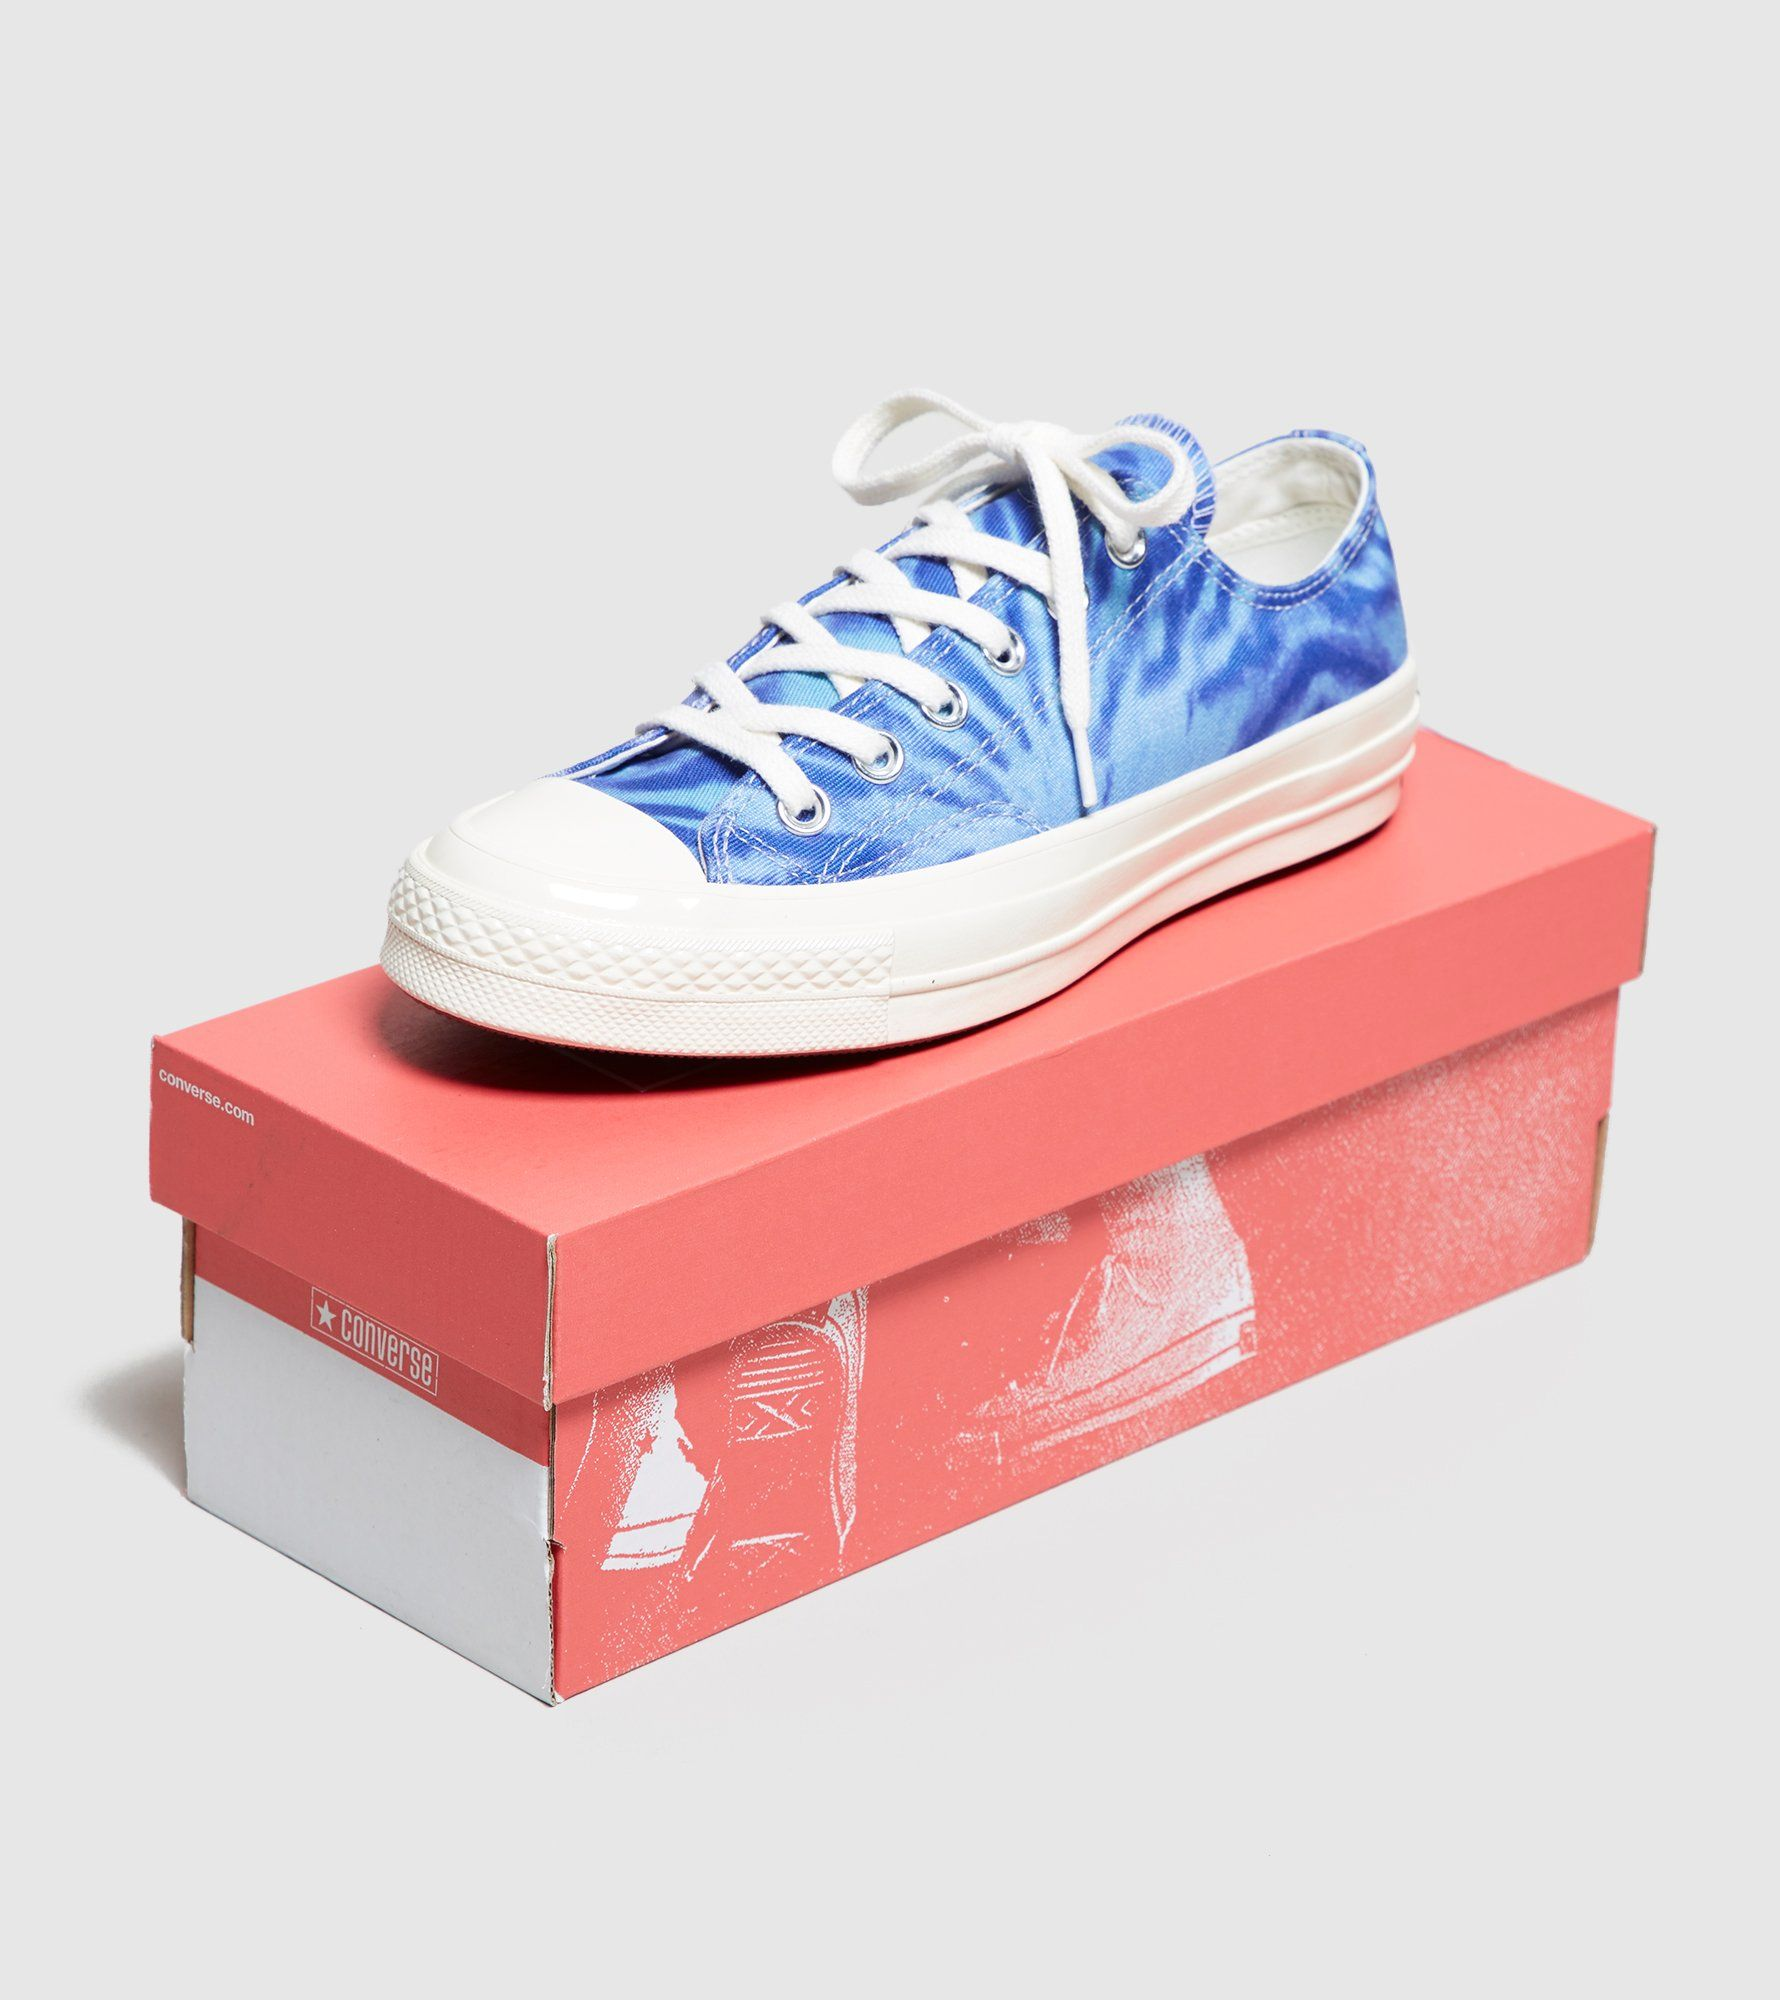 Converse All Star 70's Ox Low Women's